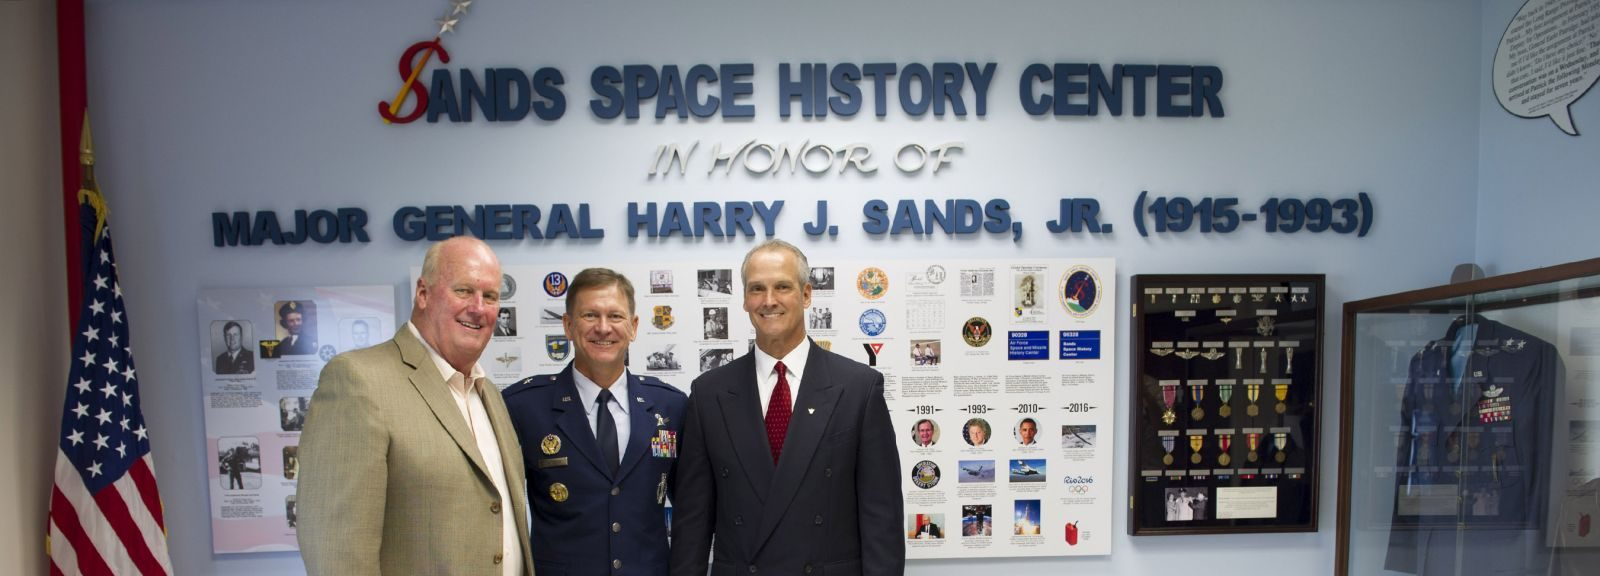 Air Force Space & Missile History Center renamed Sands Space History Center